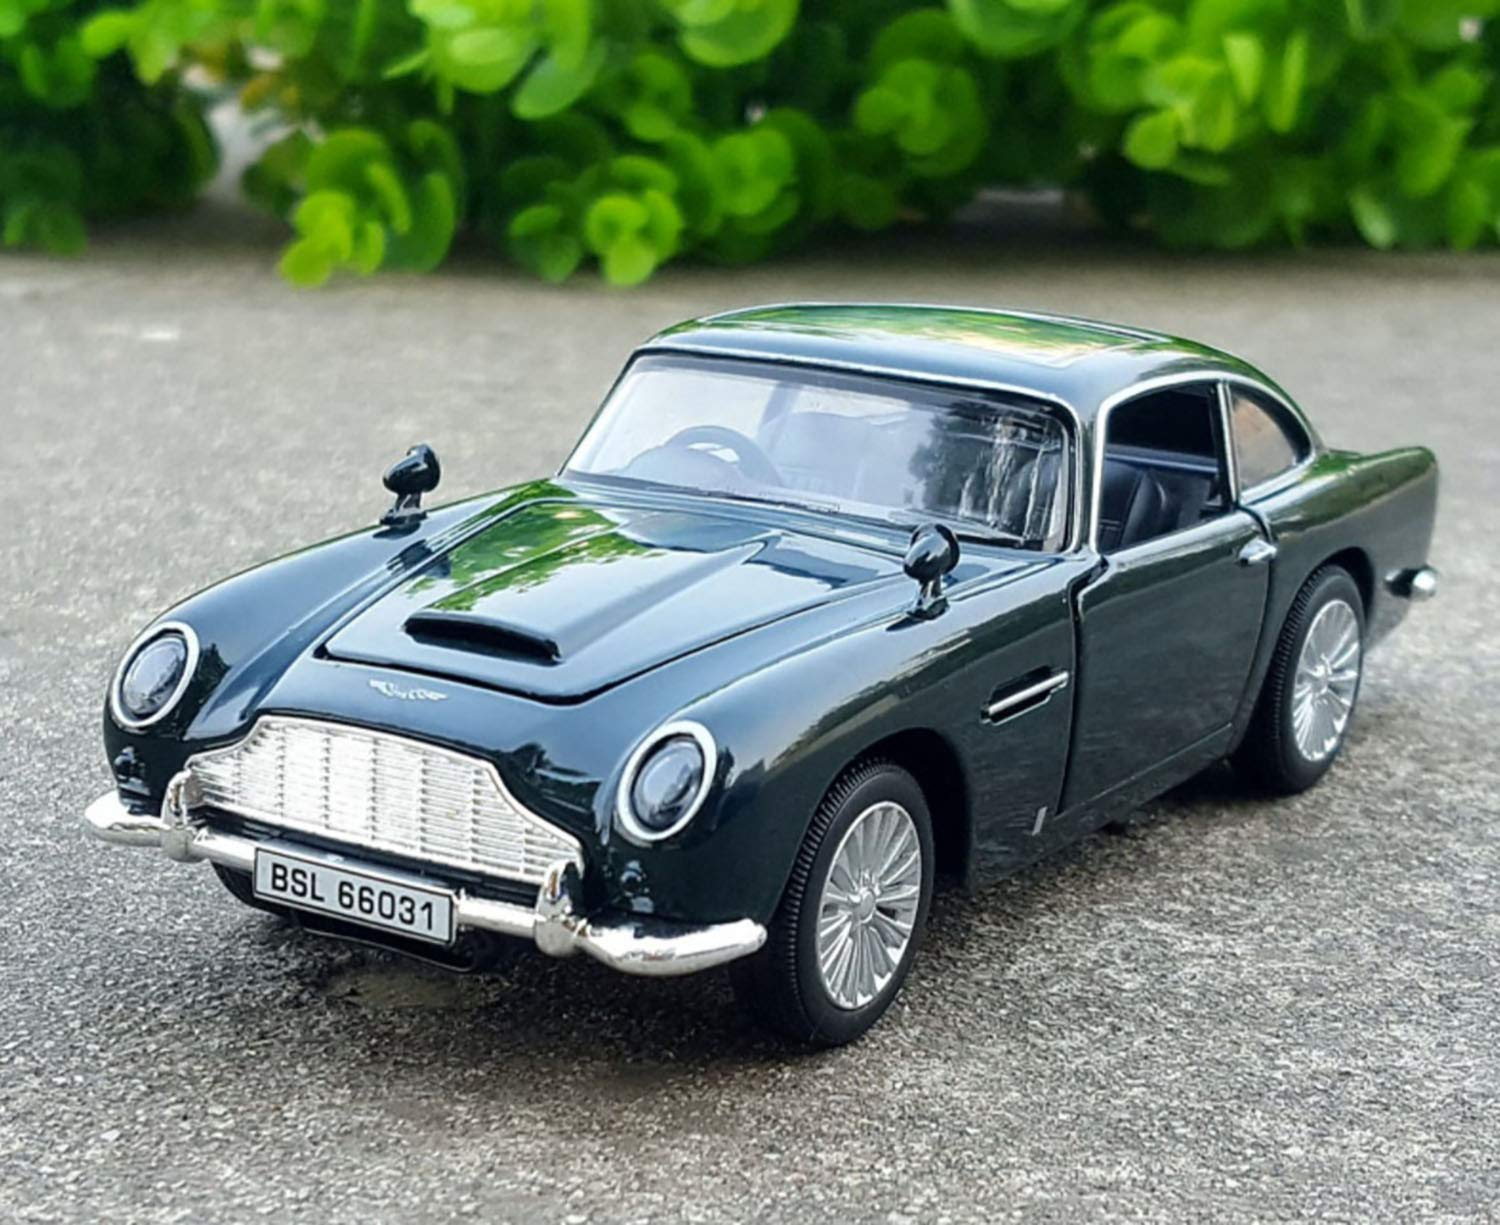 Magicwand 1 32 Scale Die Cast Aston Martin Db5 Goldfinger With 4 Openable Doors Music Lights Pull Back Action Color May Vary Buy Online In Bolivia At Desertcart Bo Productid 217096969